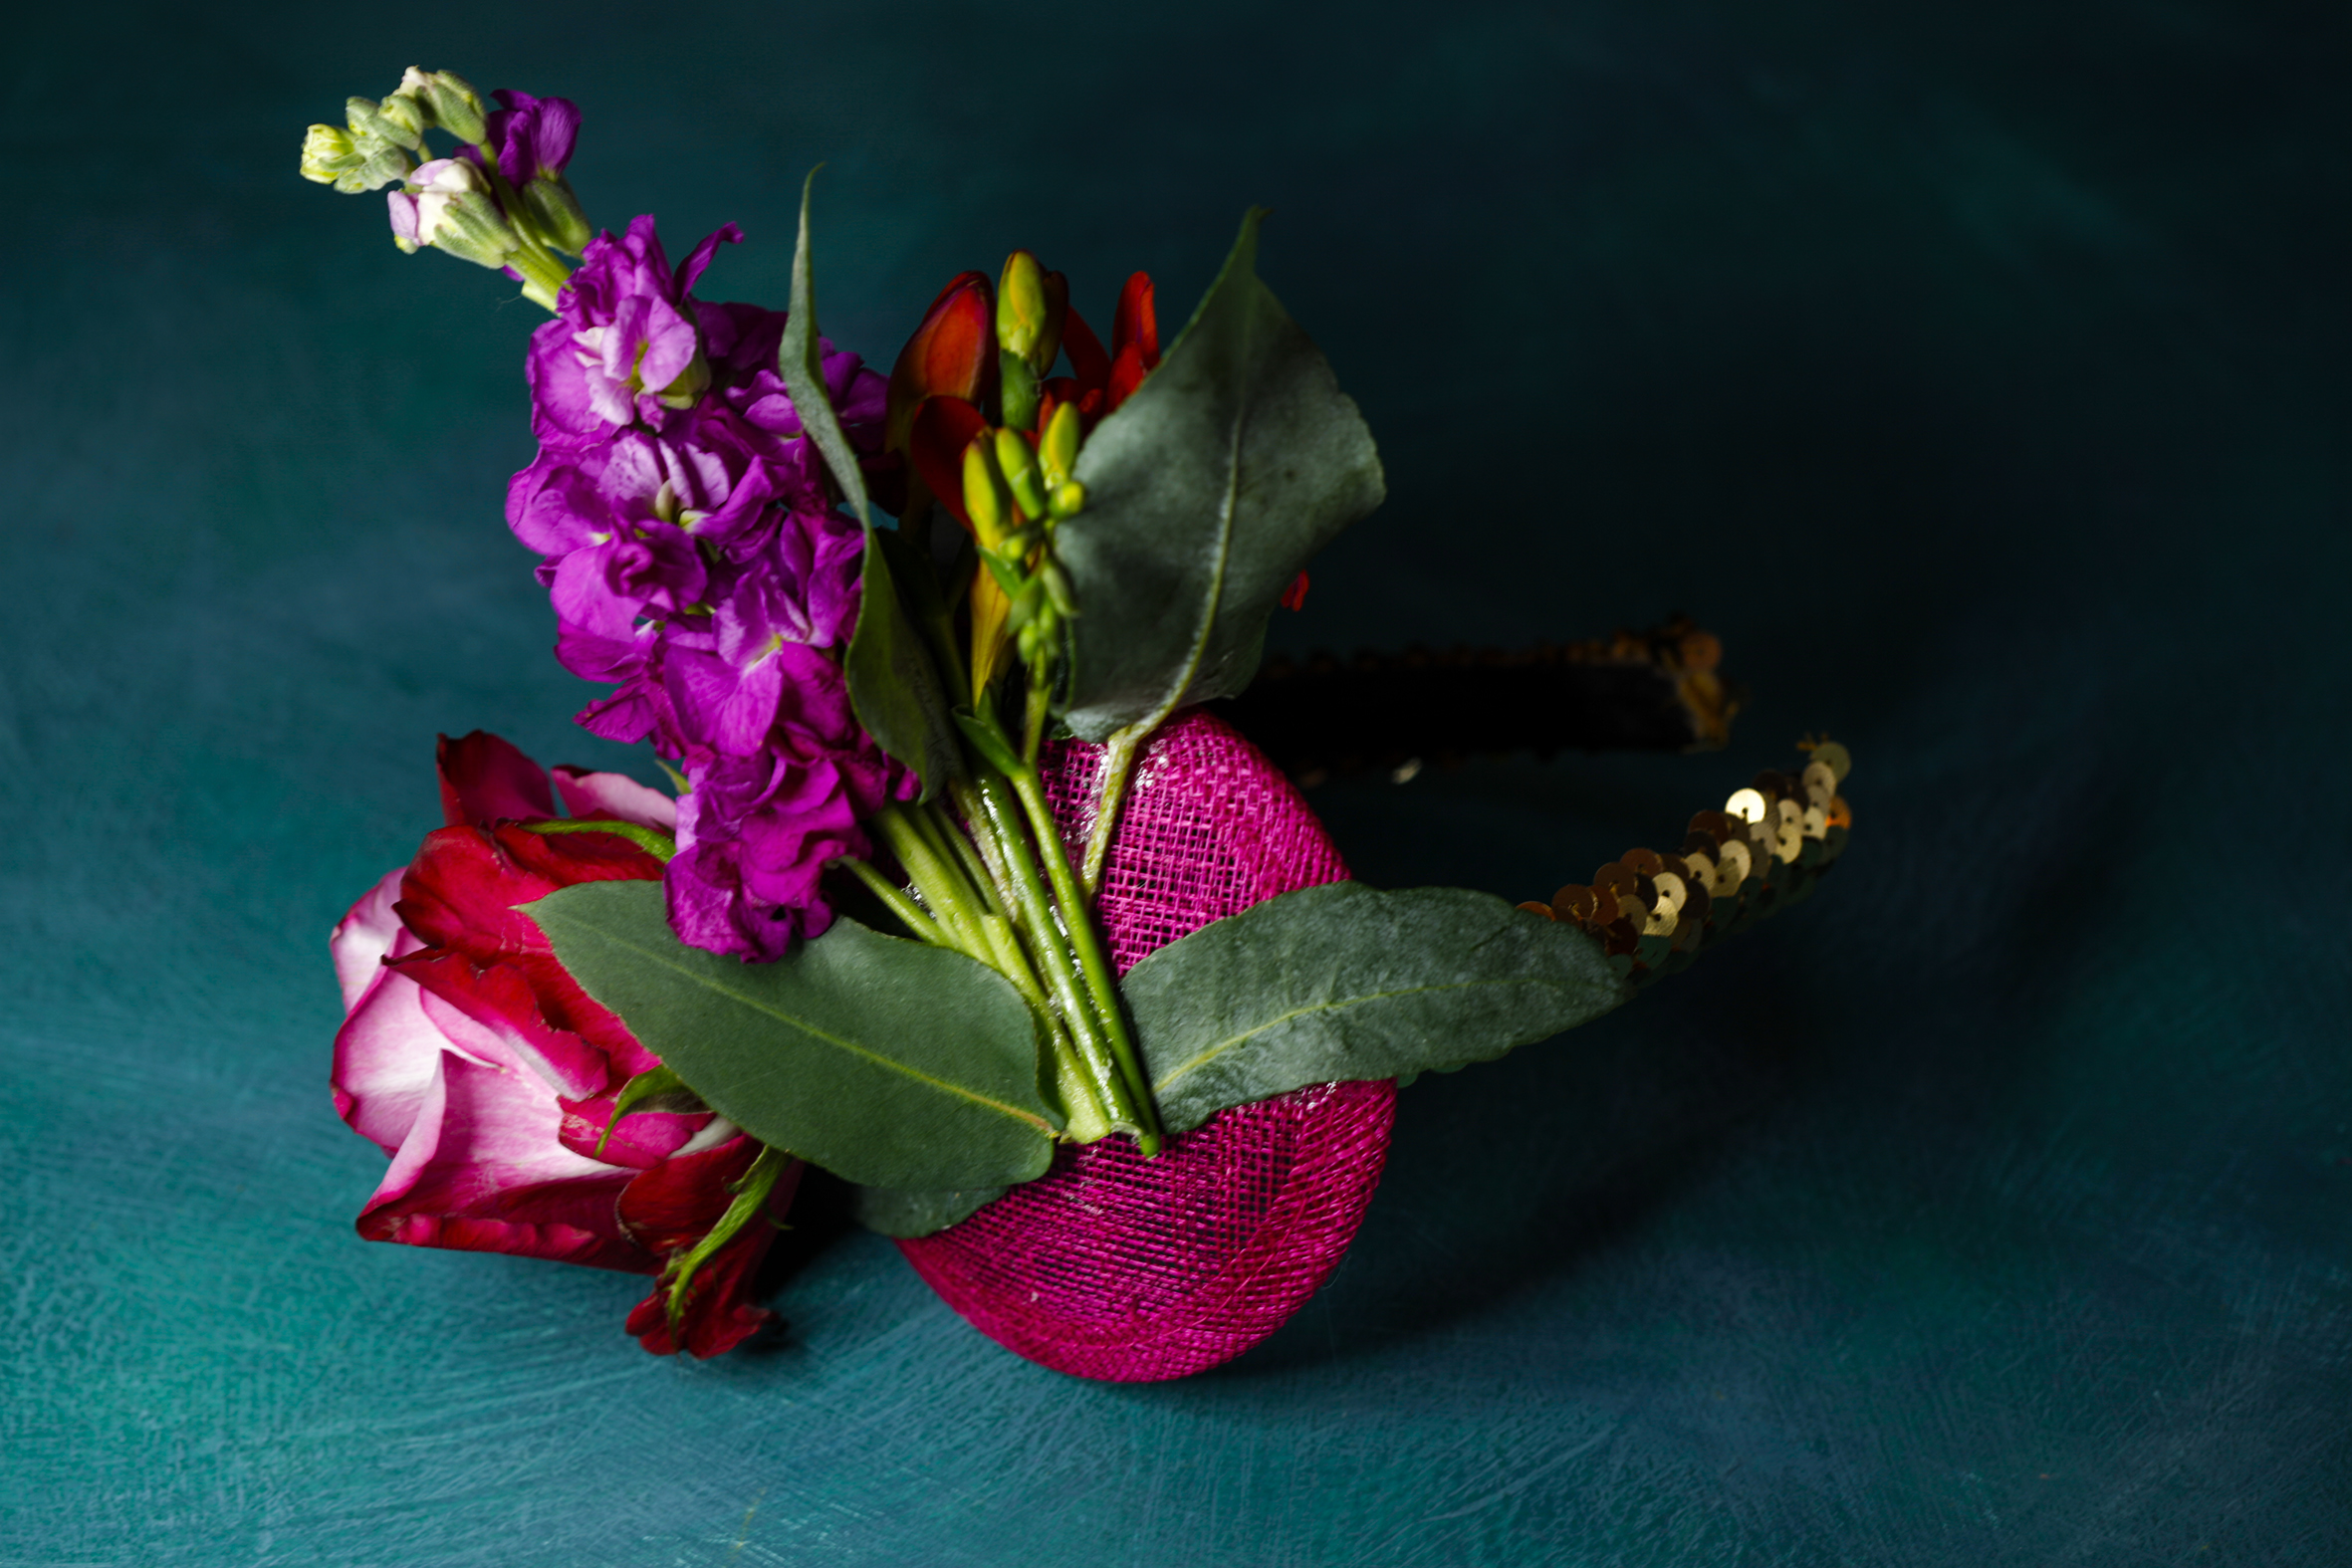 D&G inspired sequin headband, sticking the flowers